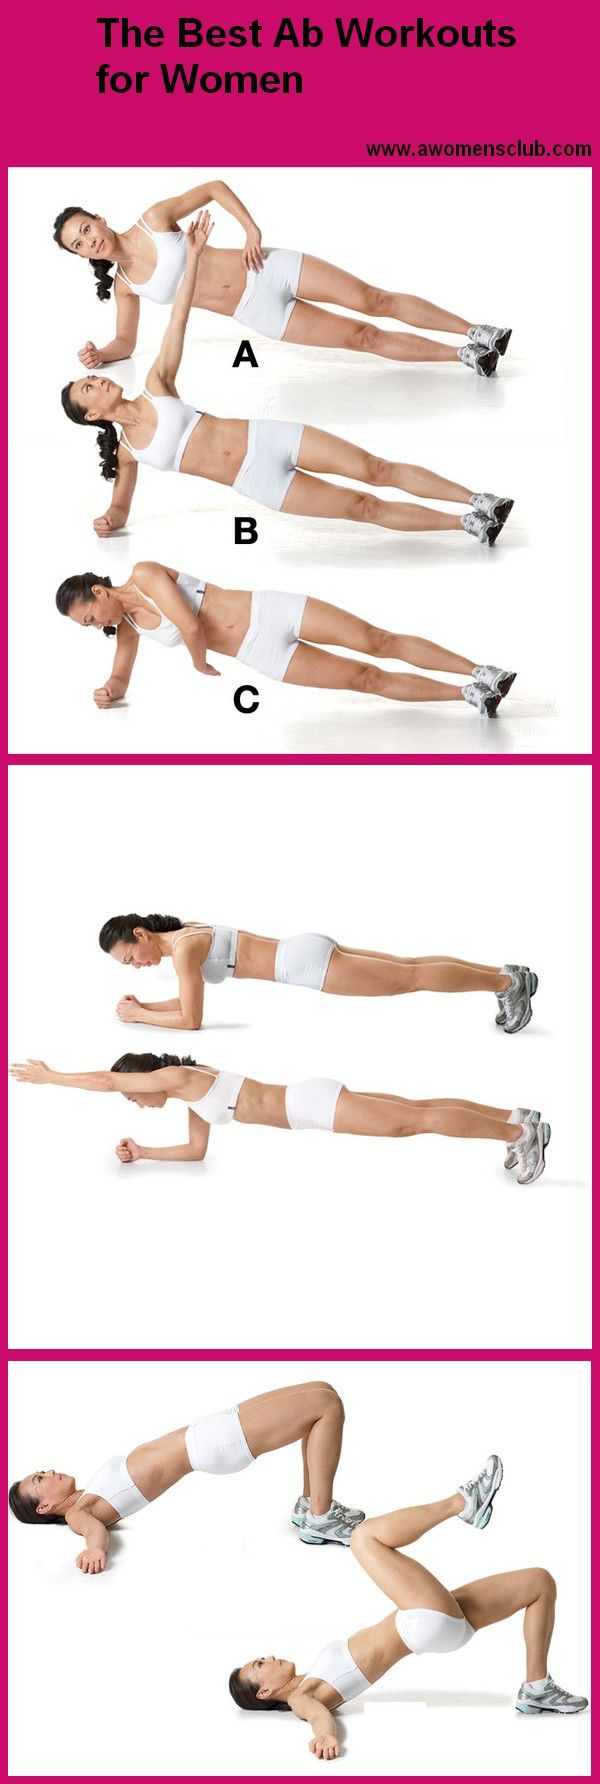 The Best Ab Workouts for Women  Weight Loss Diet  Pinterest